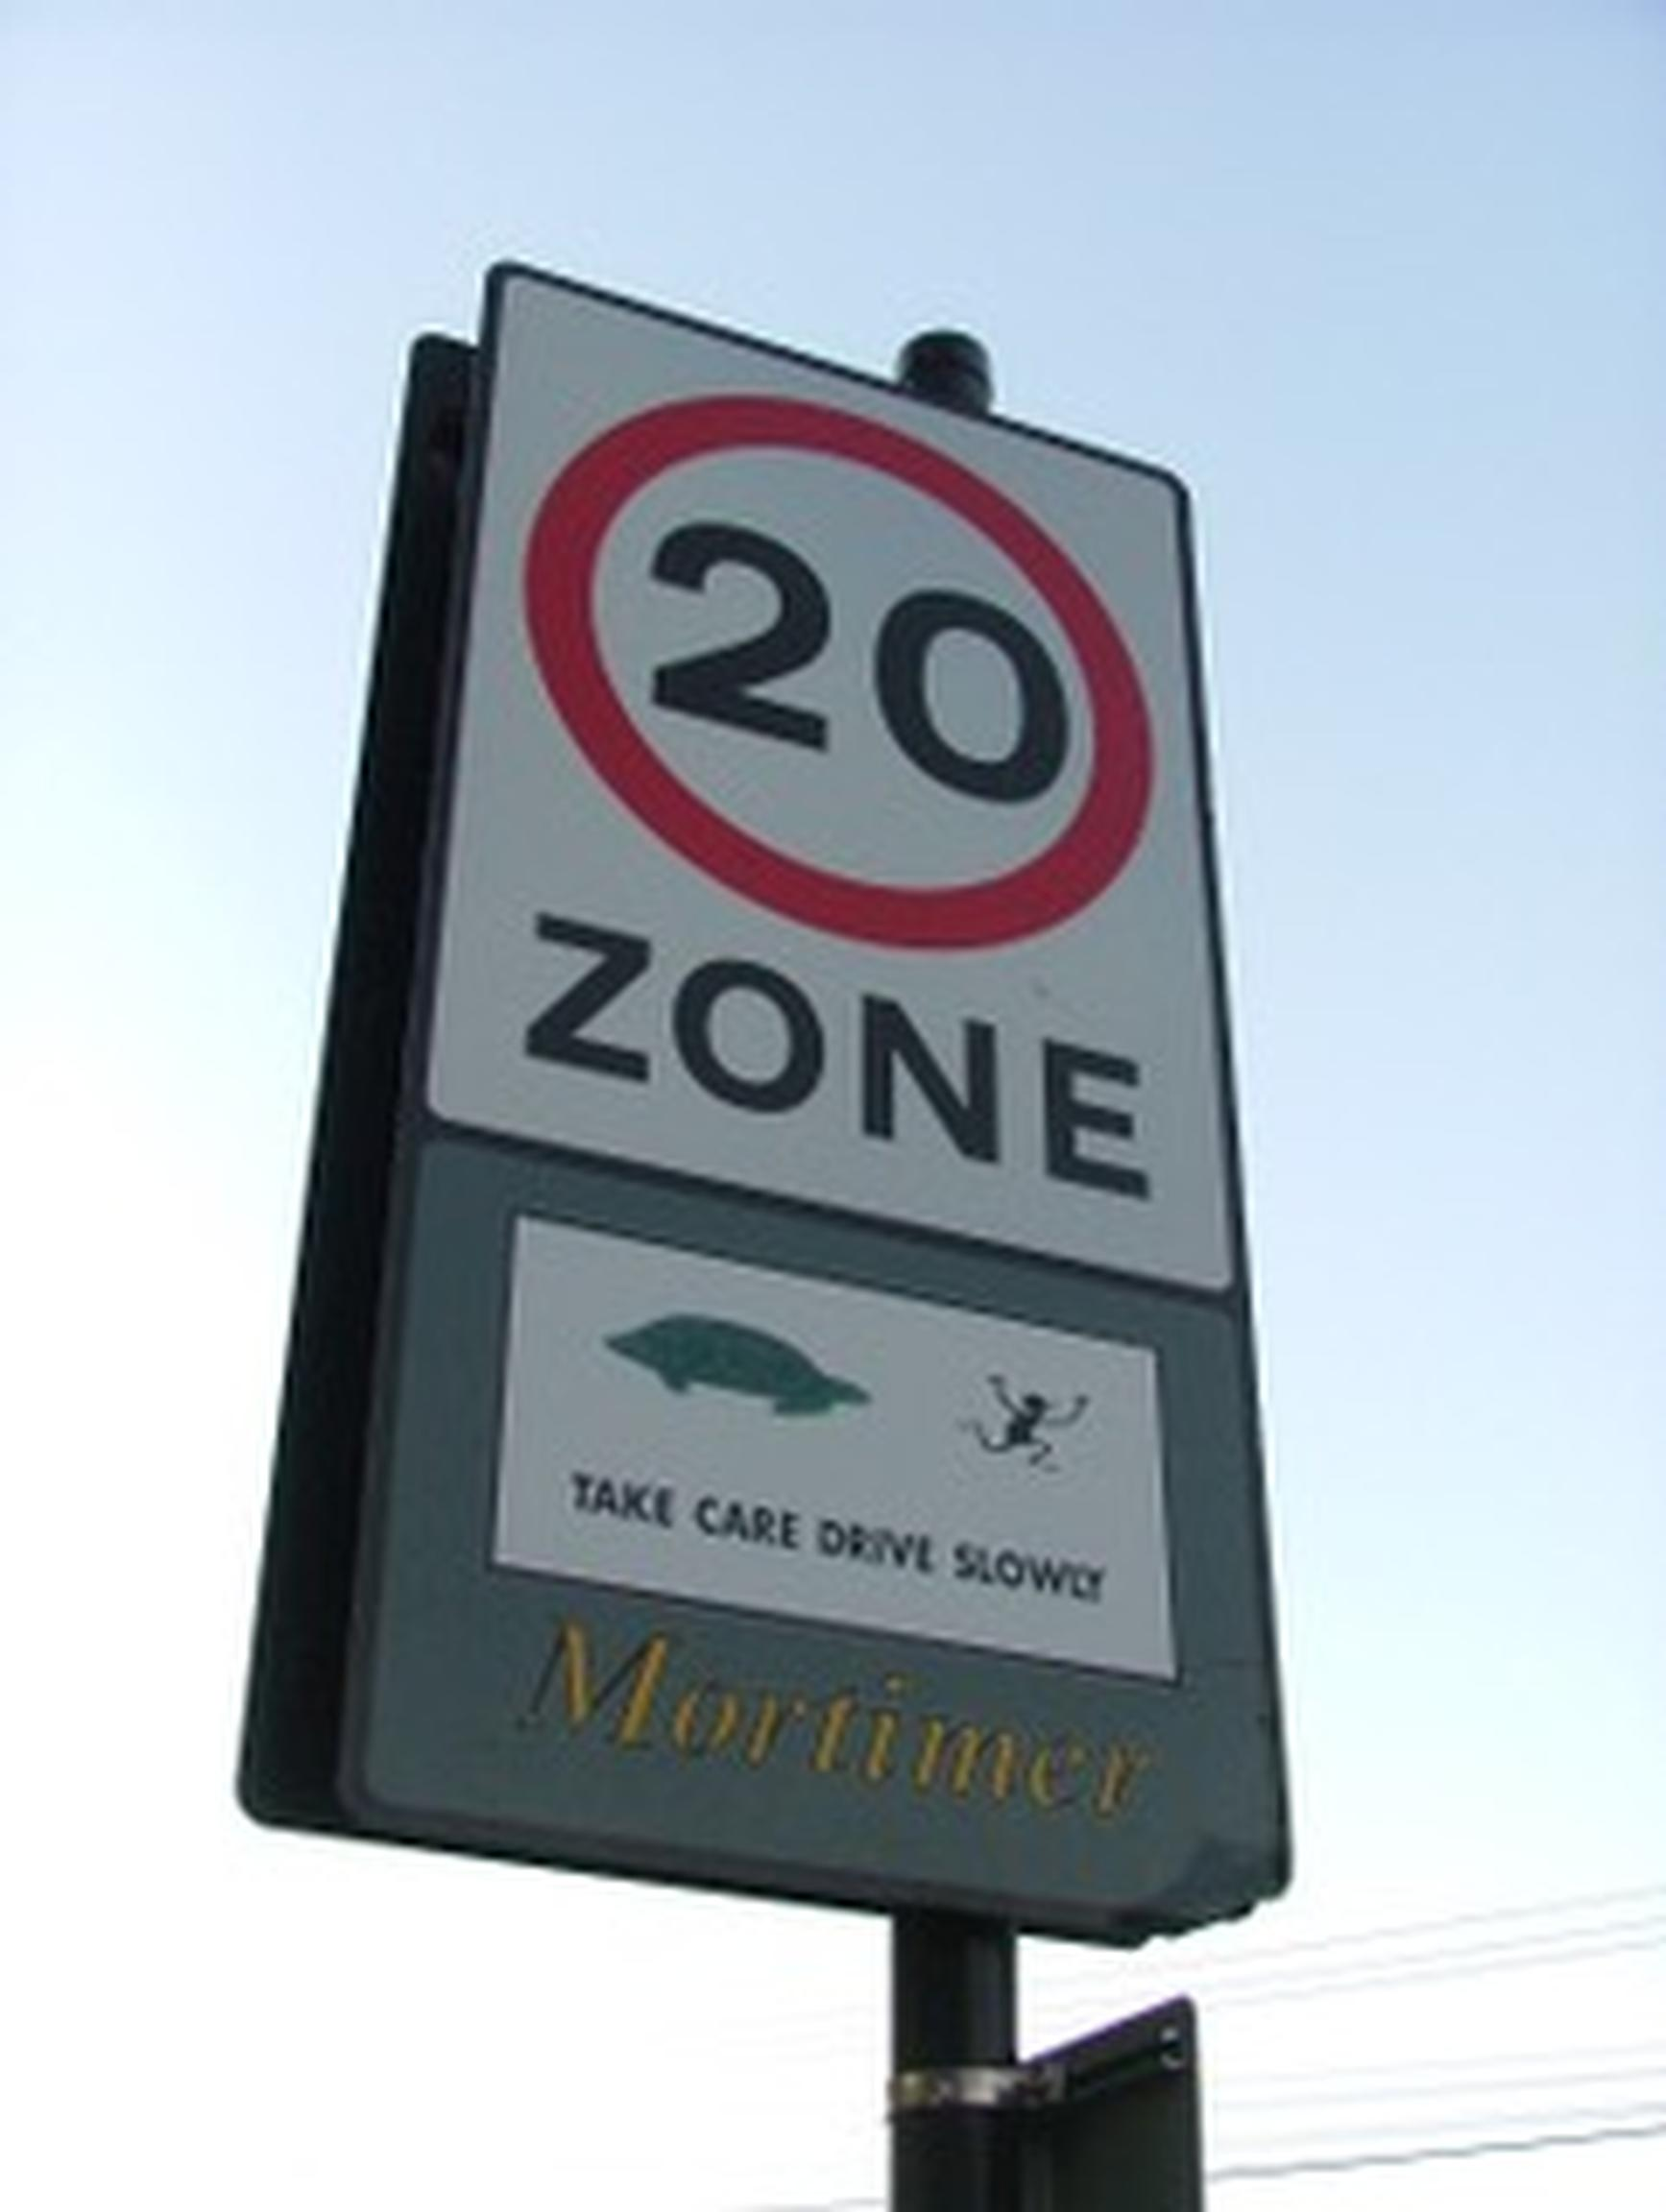 Major study to assess link between 20mph limit and safety